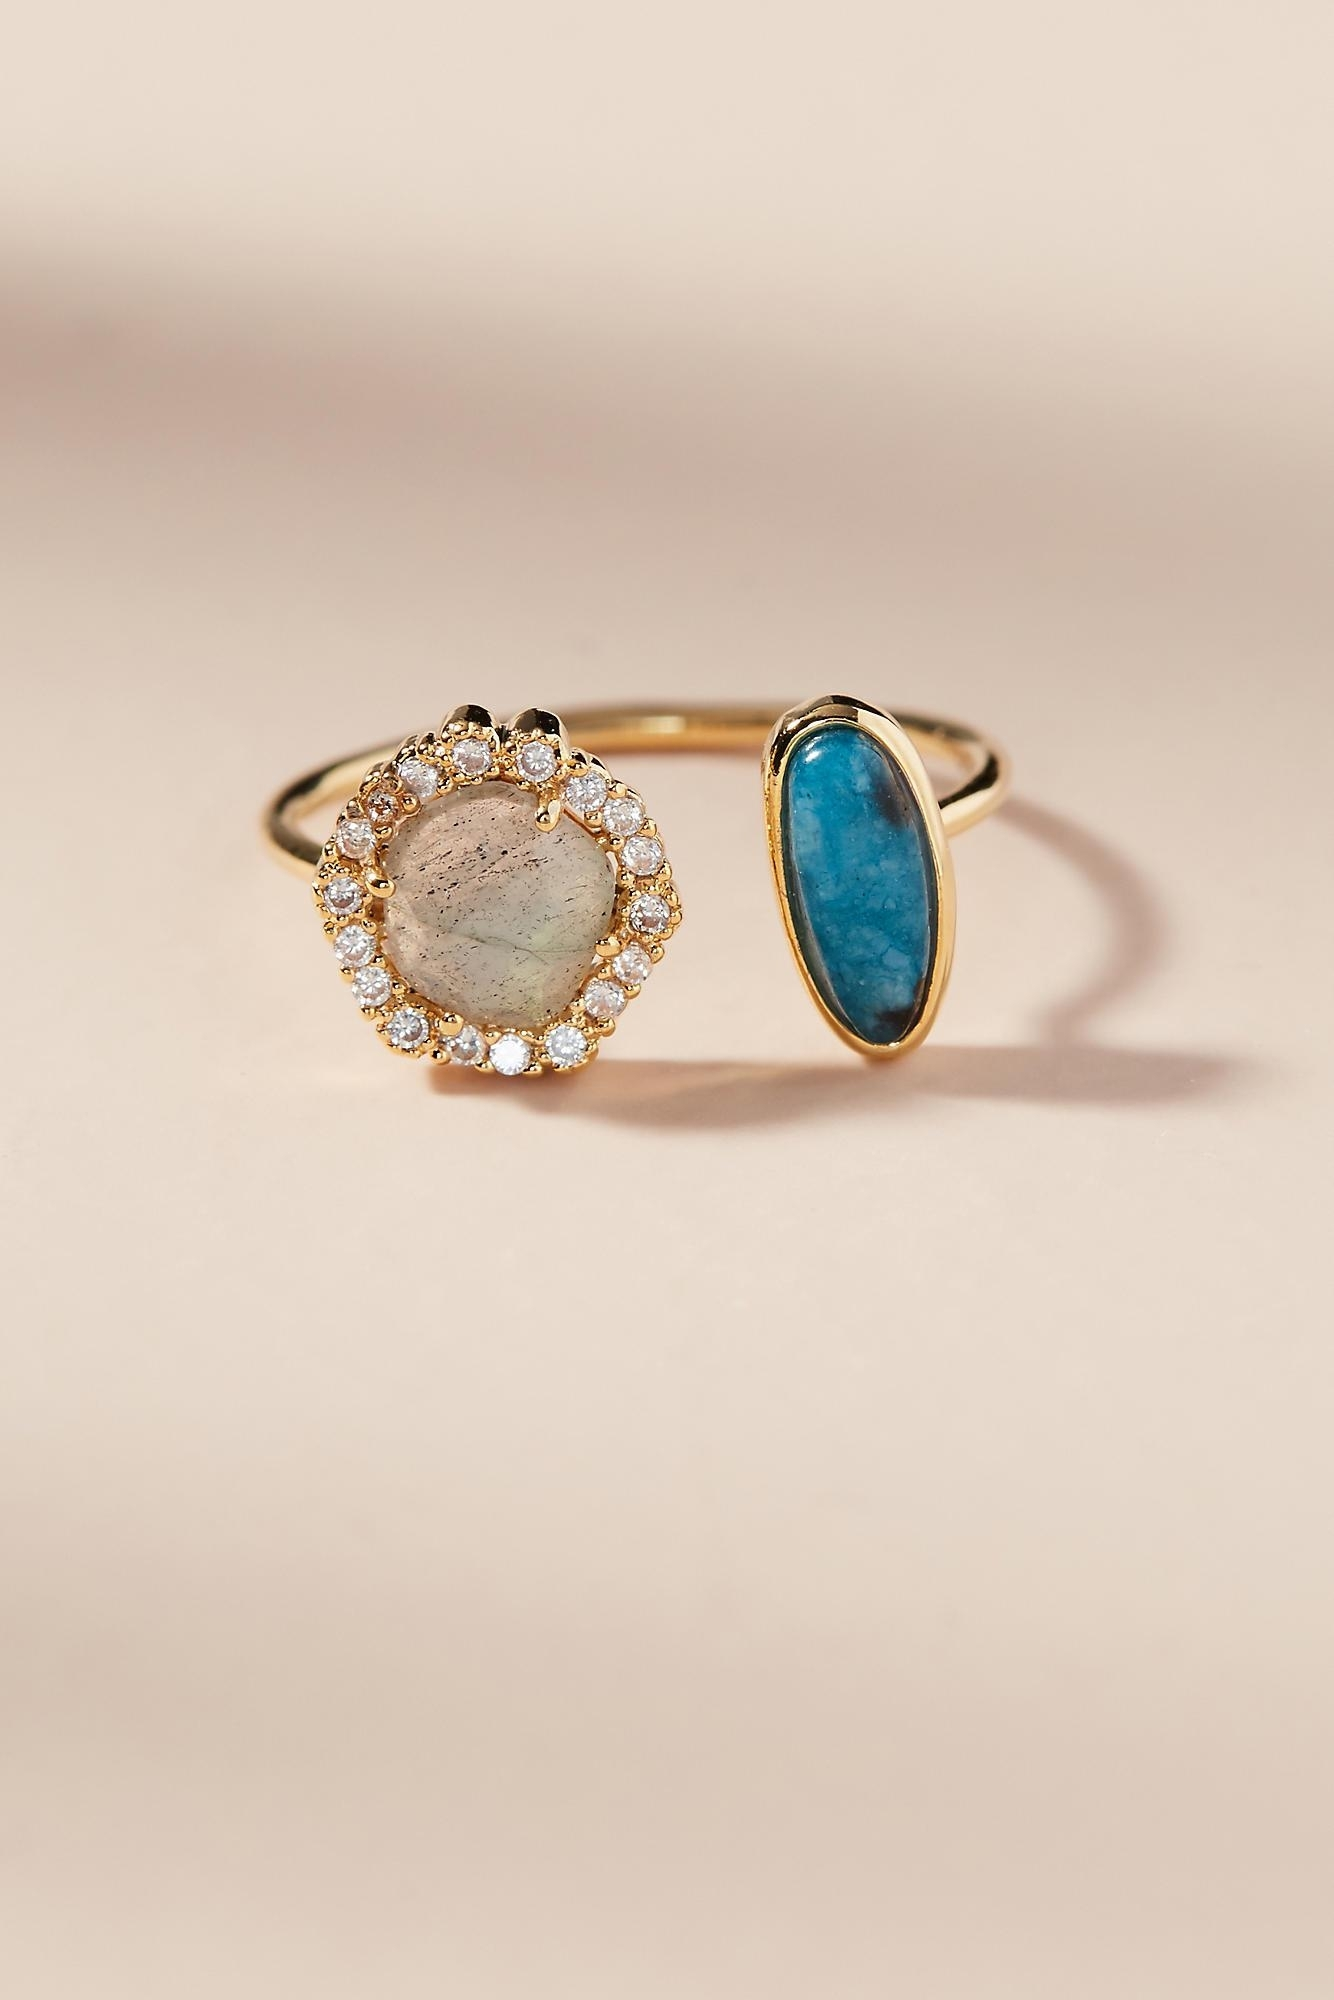 Lyst – Anthropologie Adelaide Ring In Blue With Regard To Most Recent Adelaide Toe Rings (View 7 of 15)